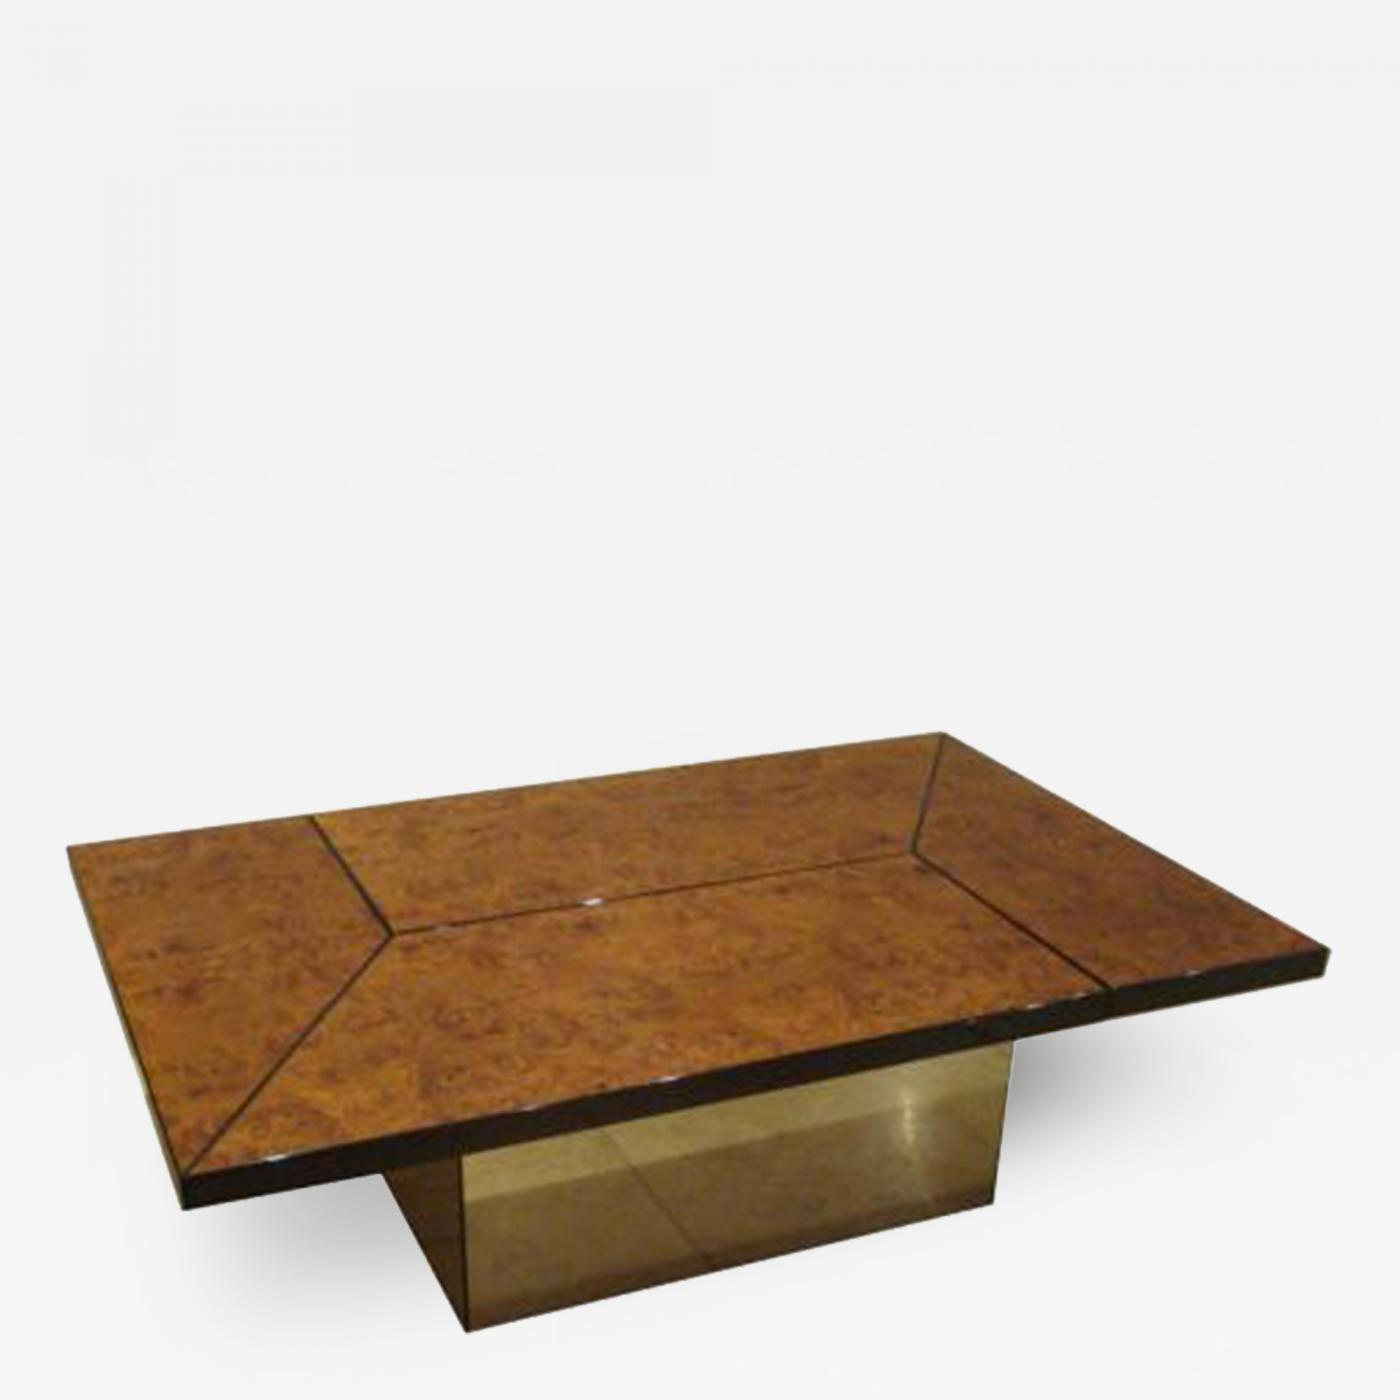 Maison Lancel Opening Cocktail Table in Burl Walnut and Mirror